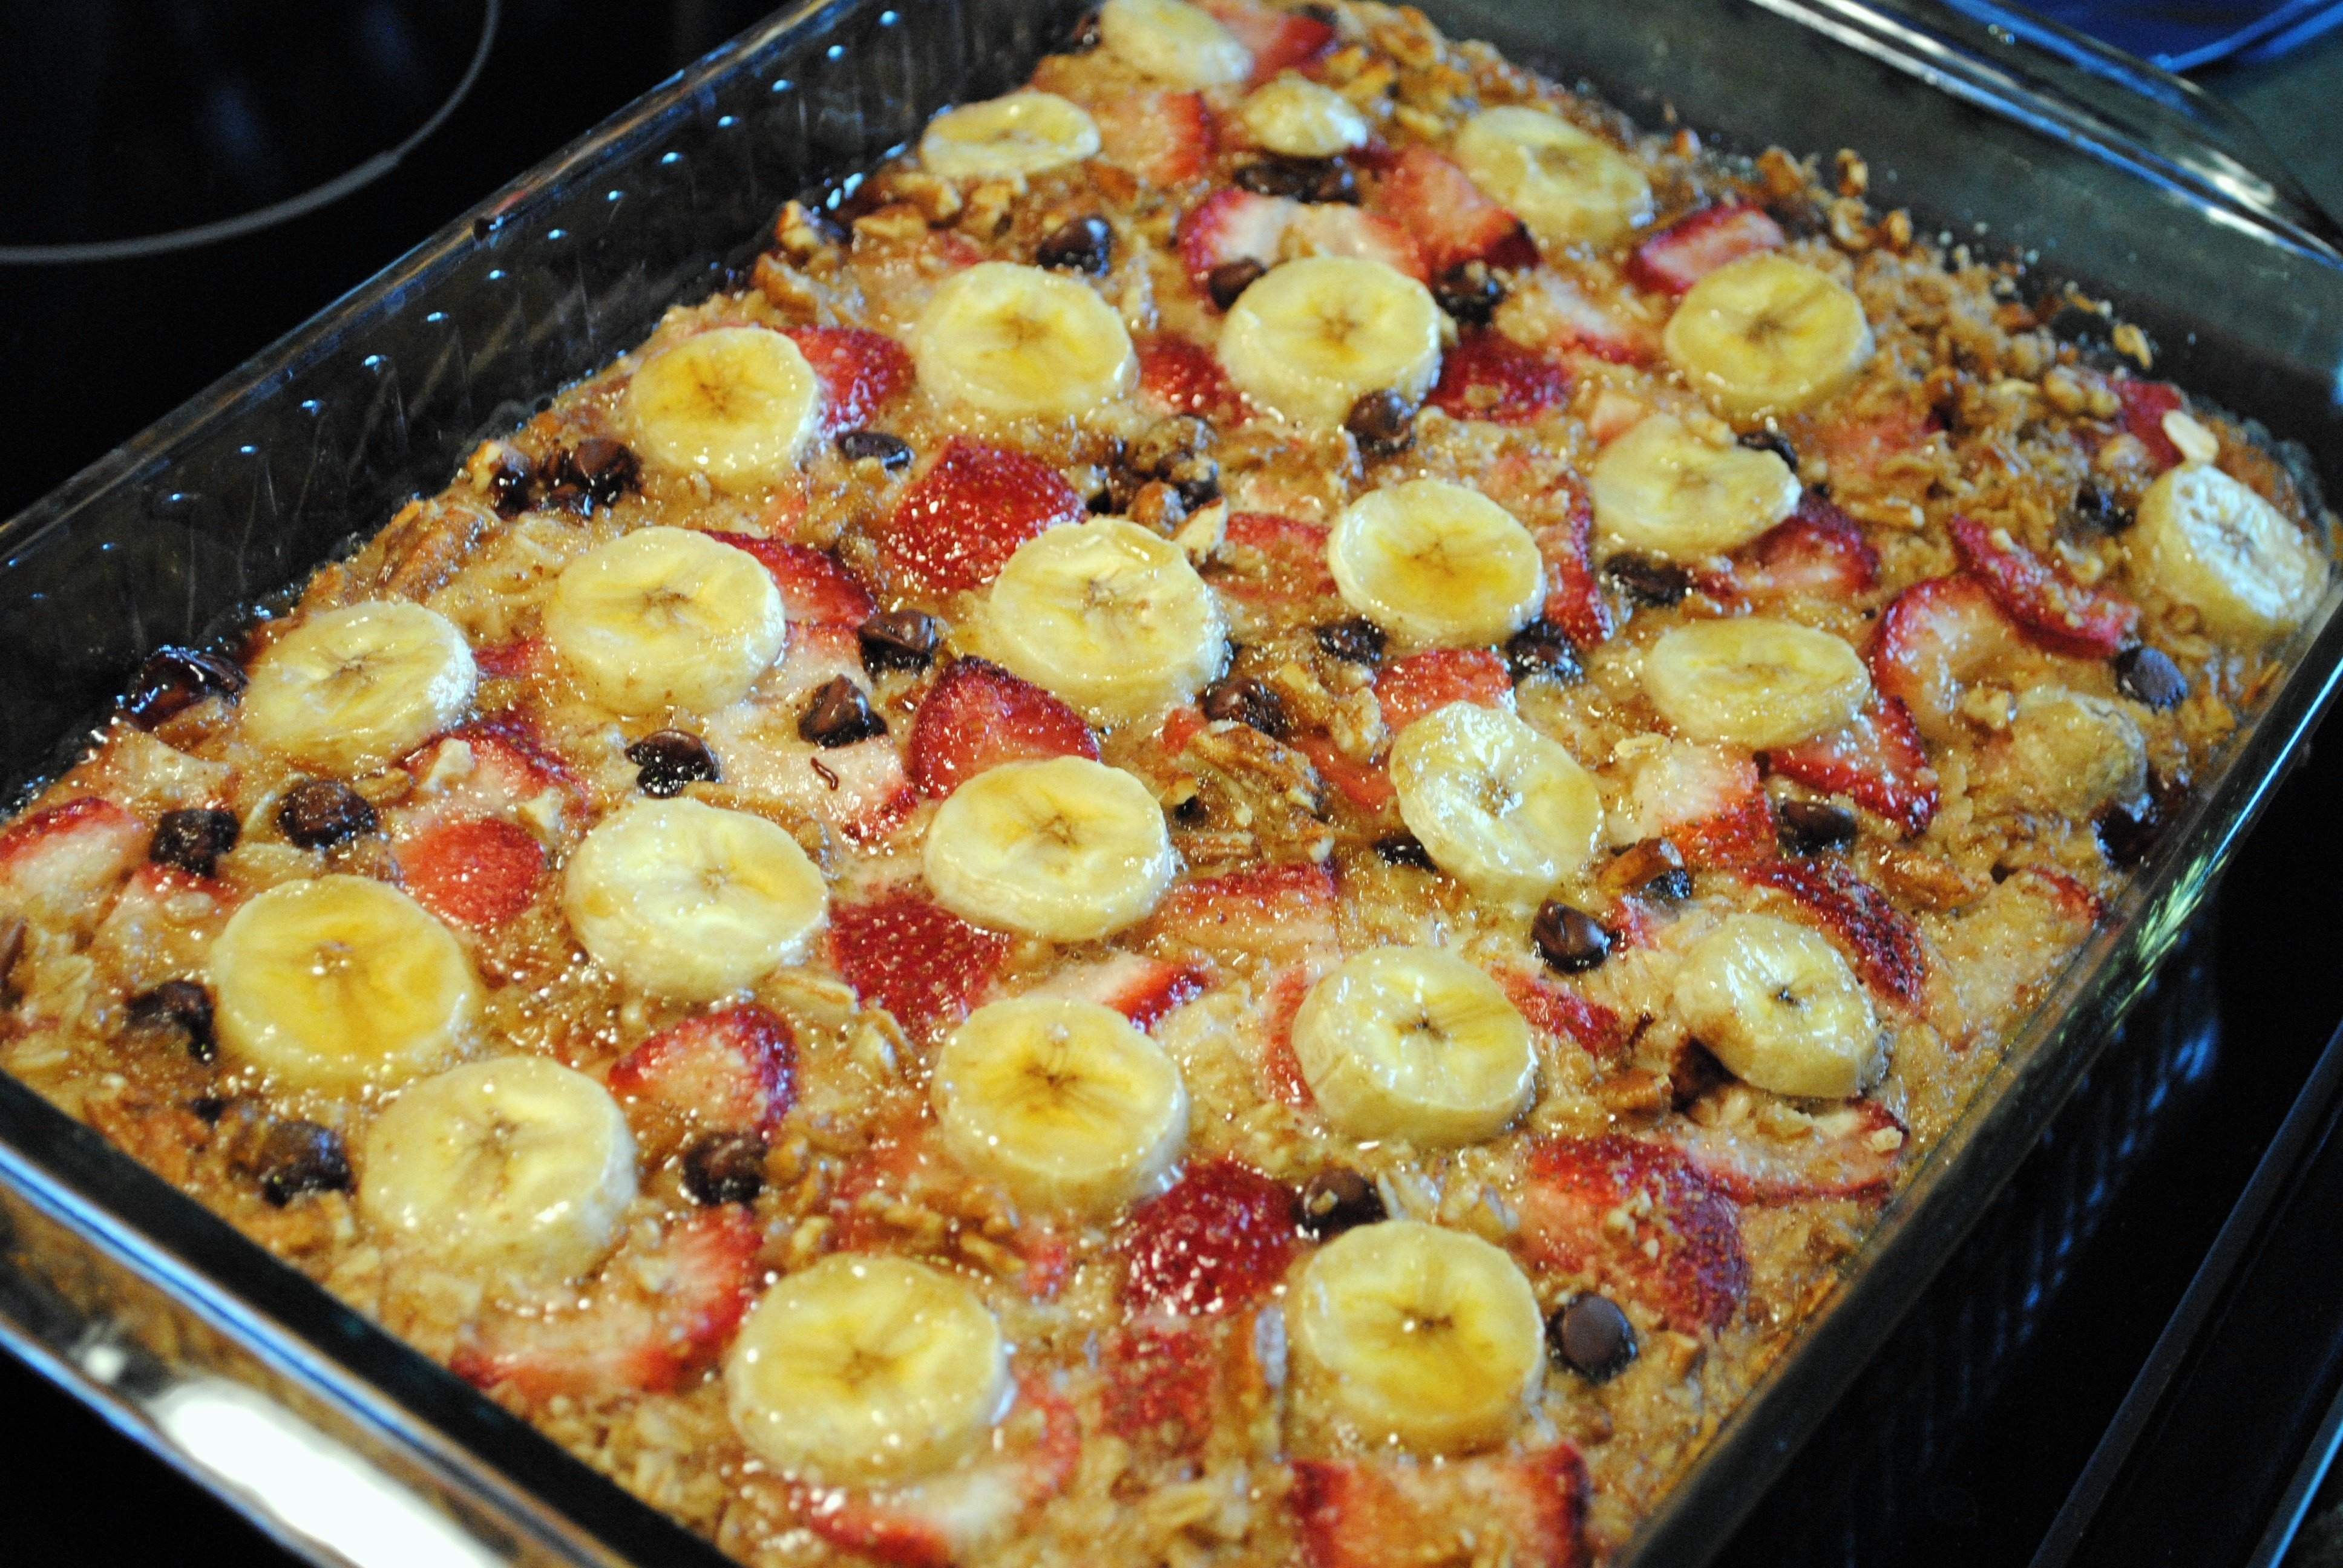 10 Stunning Breakfast Ideas For A Crowd baked oatmeal with strawberries bananas and chocolate 1 2020